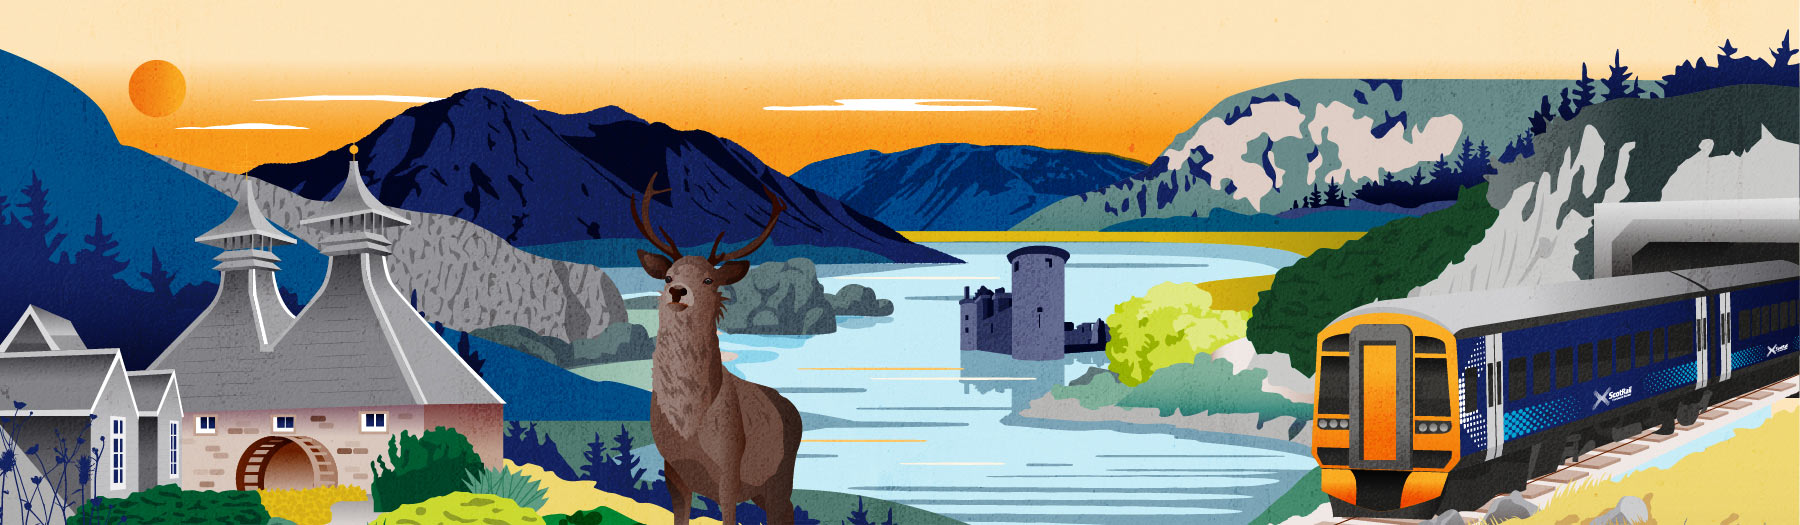 Spirit of Scotland illustration